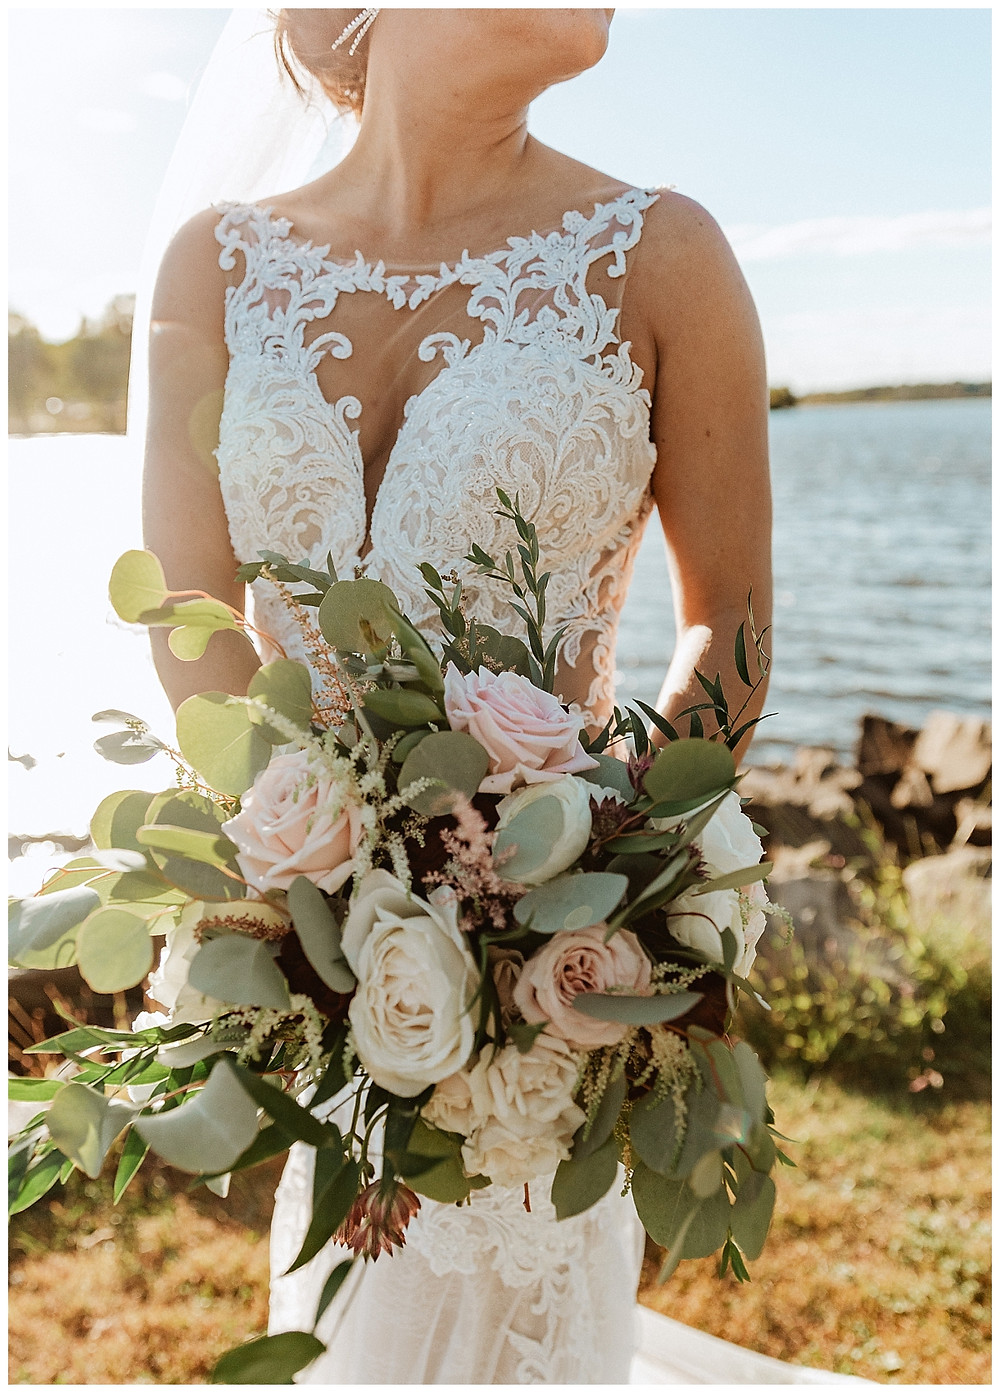 Bridal Portrait with Eucalyptus & Rose Bridal Bouquet